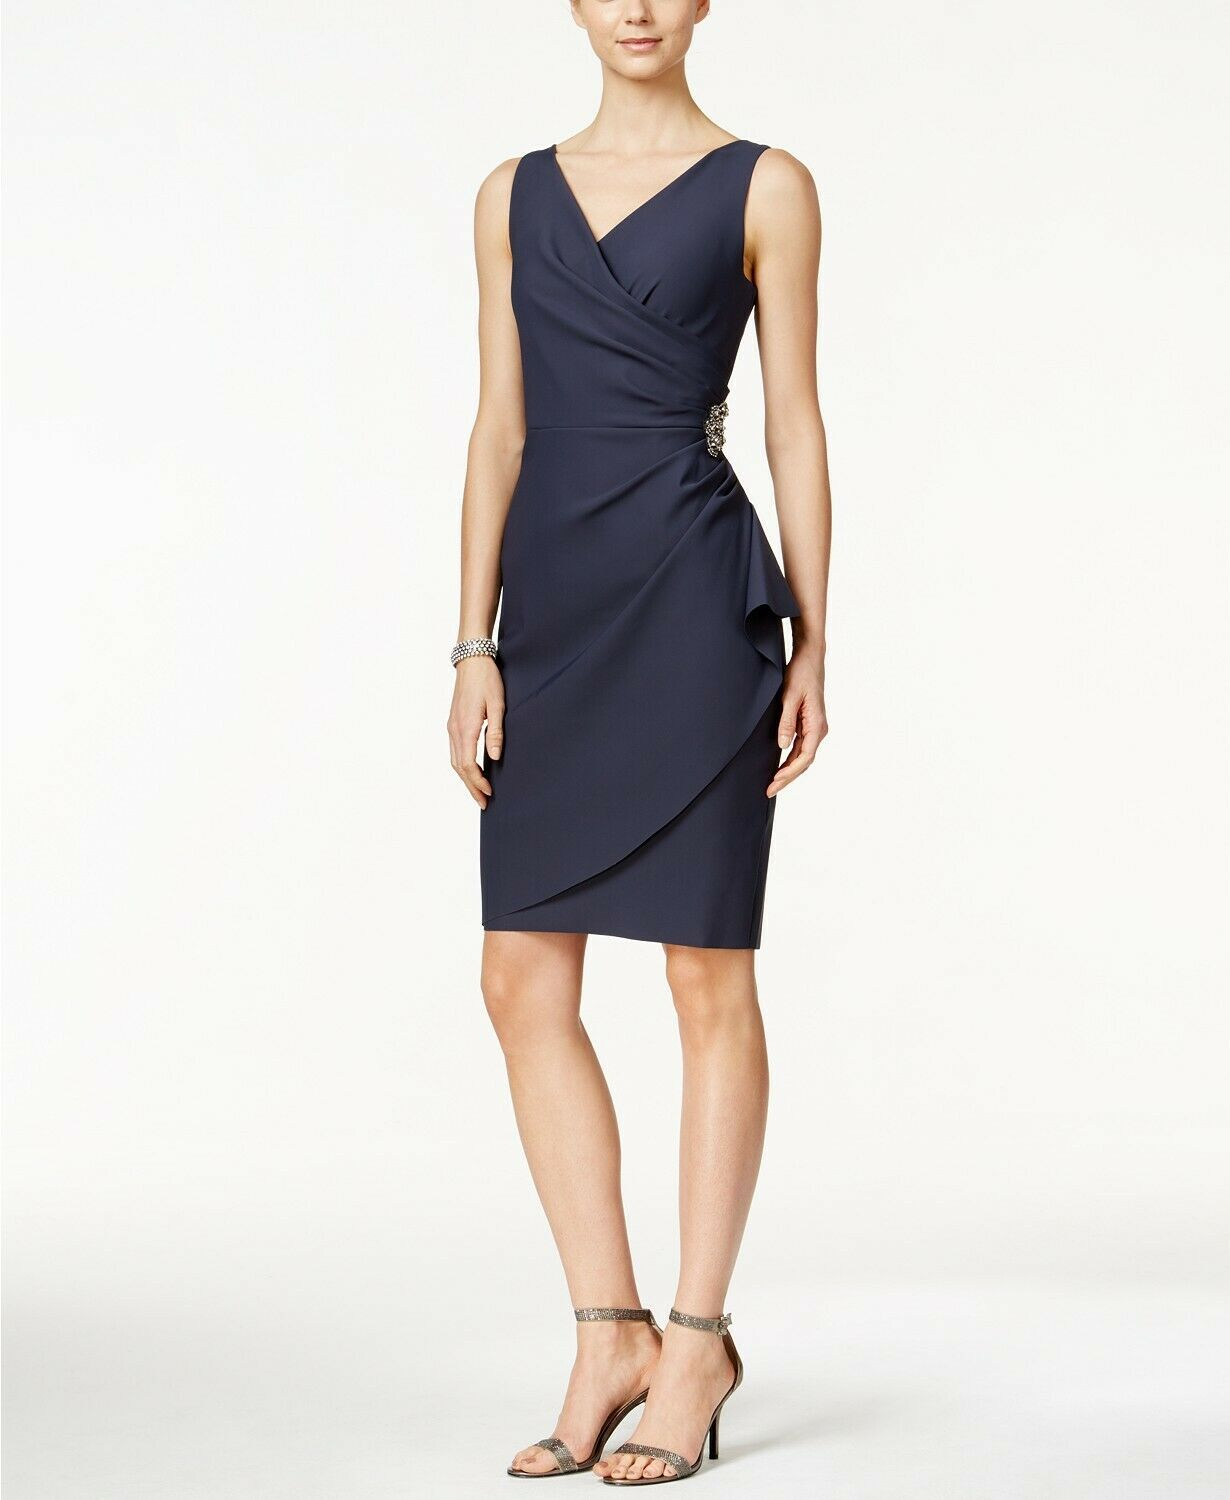 Alex Evenings Compression Embellished Ruched Sheath Dress Charcoal Size 18 $209